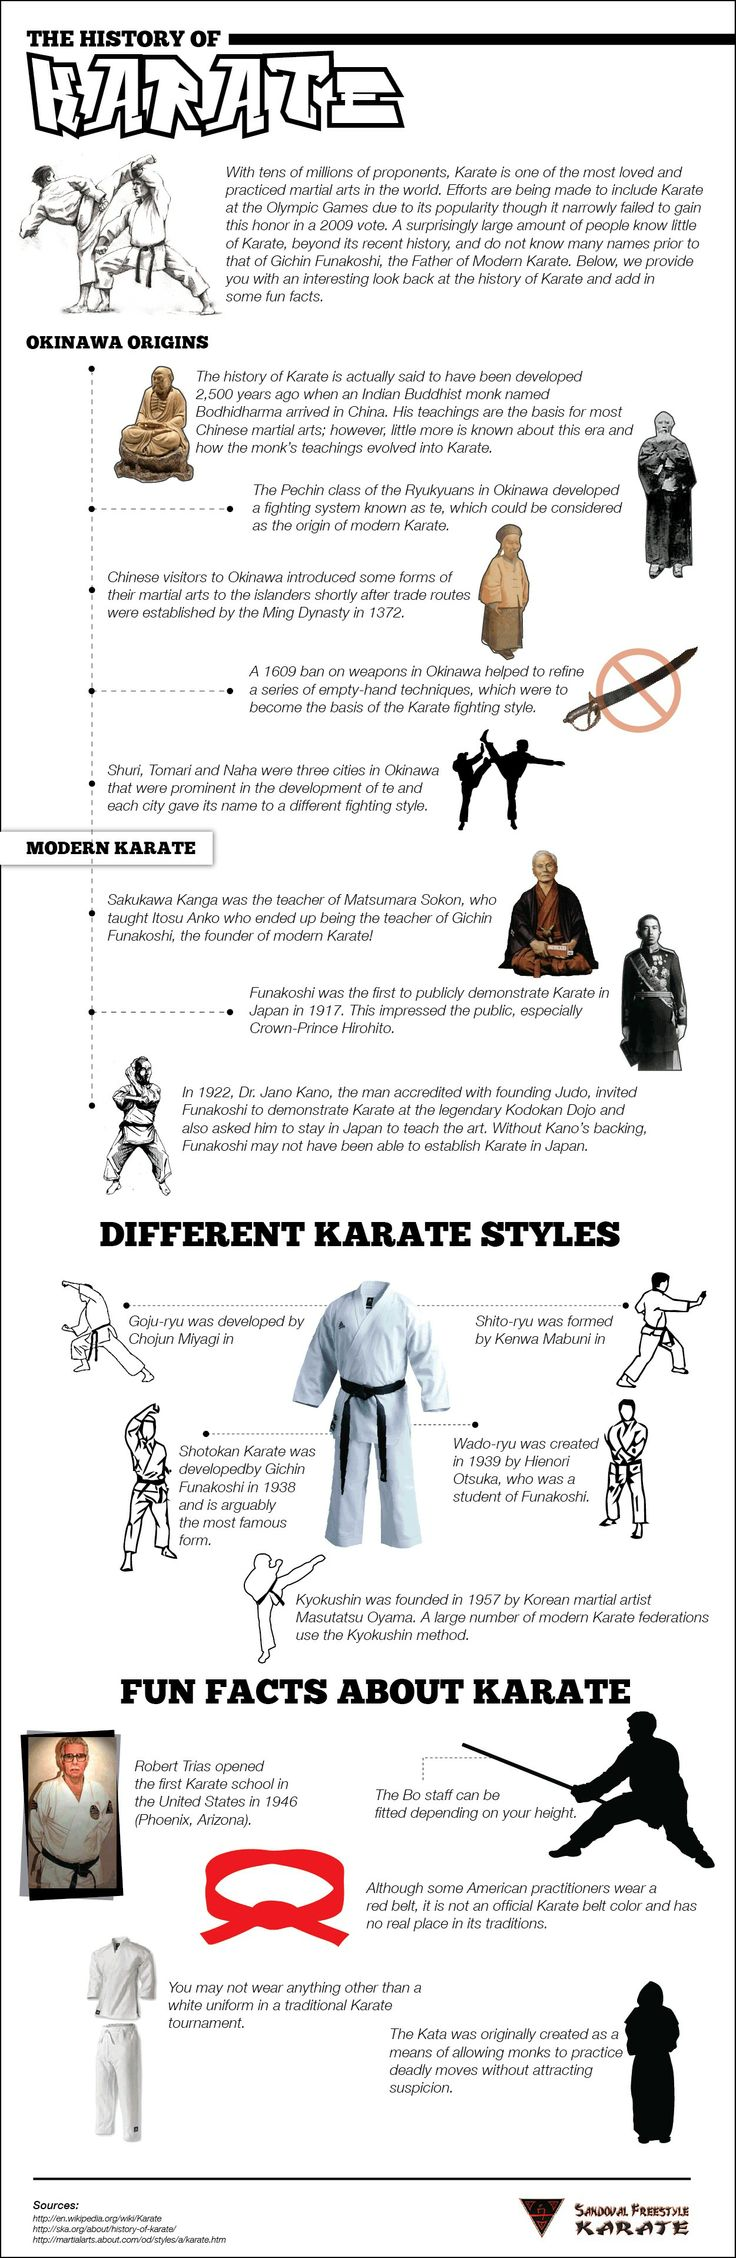 Karate Styles infographic